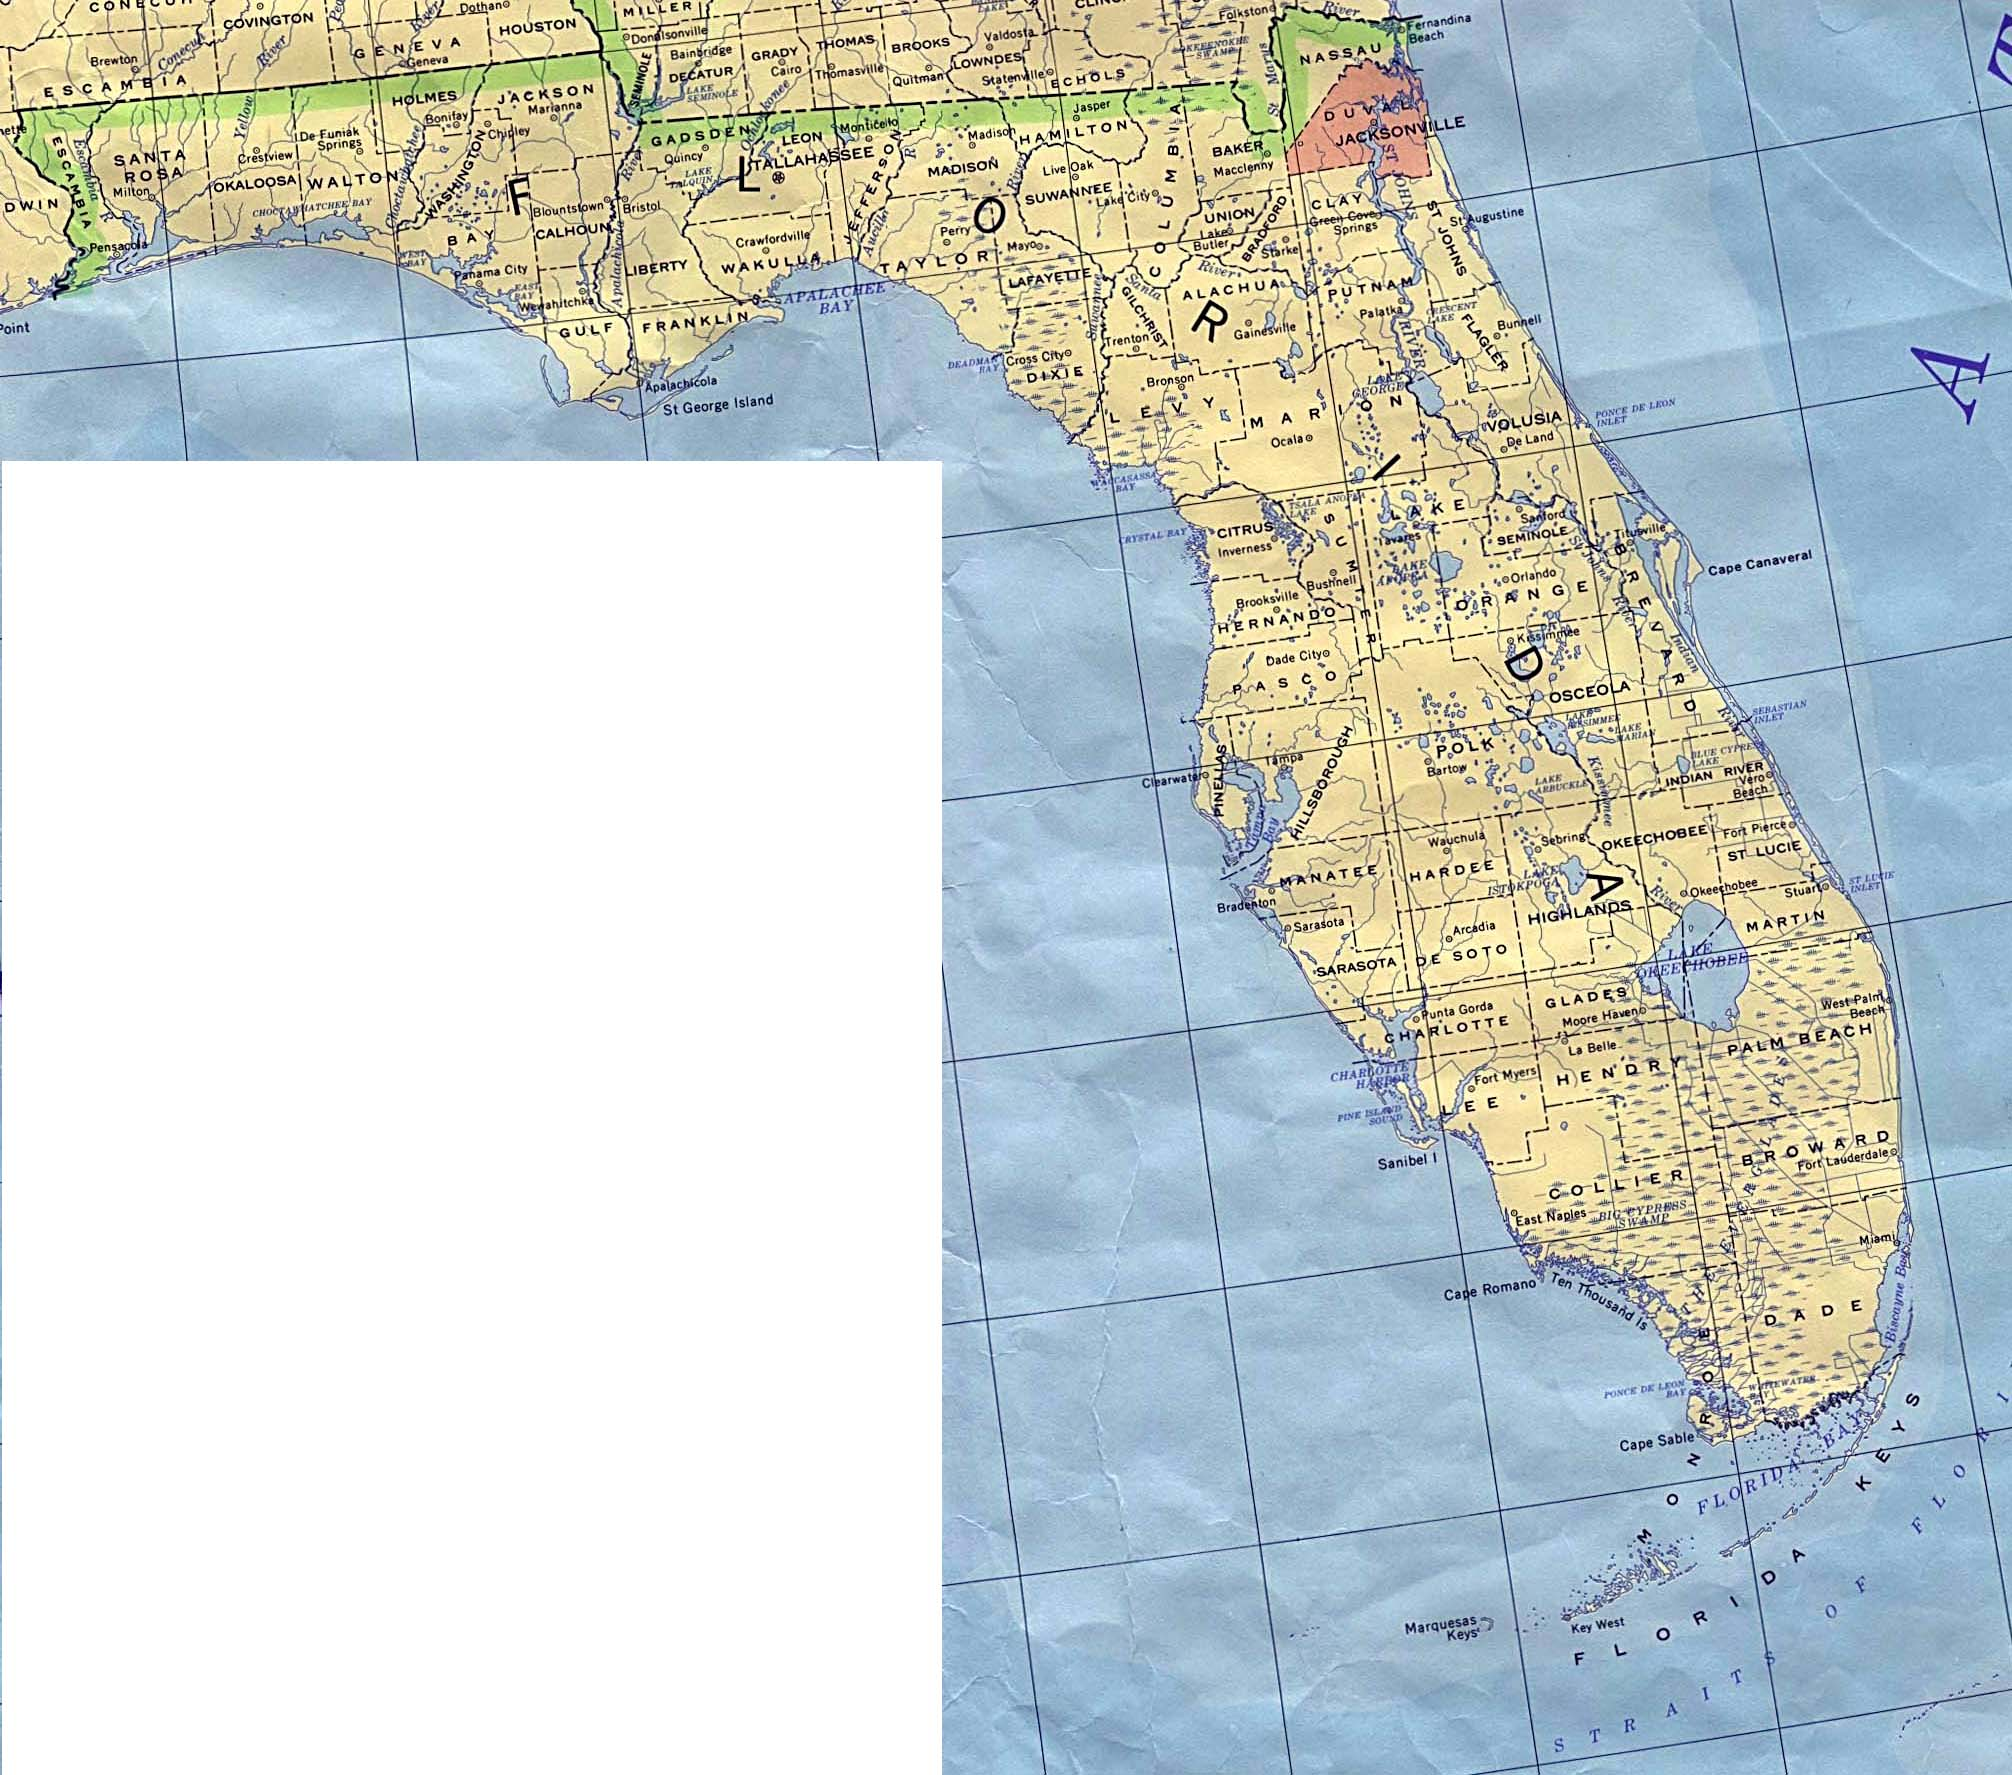 Florida Maps - Perry-Castañeda Map Collection - UT Library Online